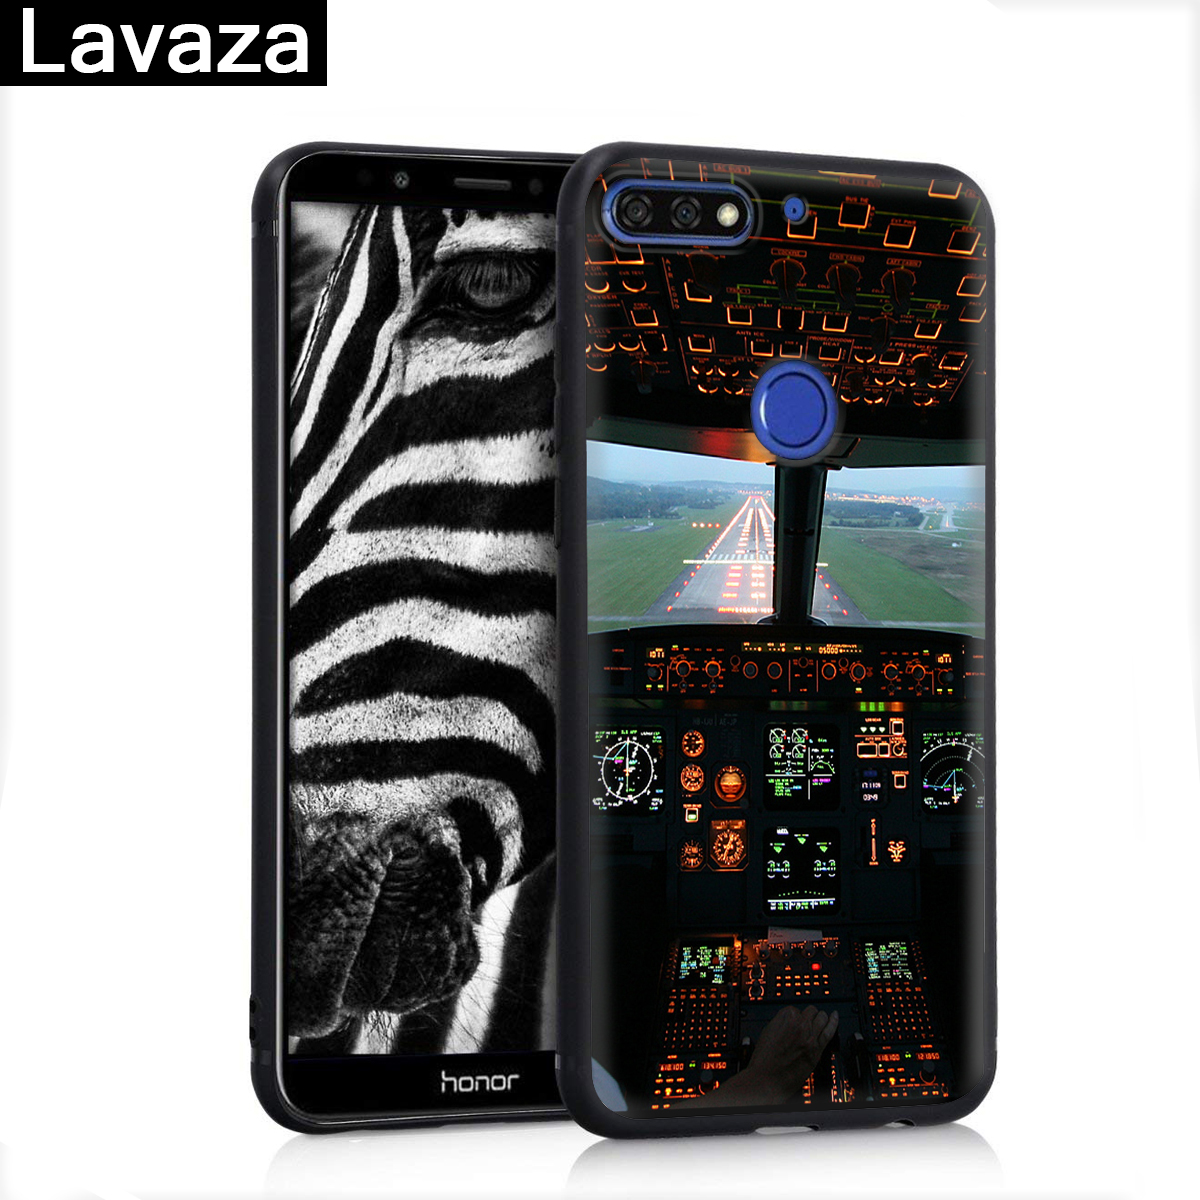 Lavaza Aircraft Airplane Cockpit Silicone Case for Huawei P8 Lite 2015 2017 P9 2016 Mini P10 P20 Pro P Smart 2019 P30 in Fitted Cases from Cellphones Telecommunications